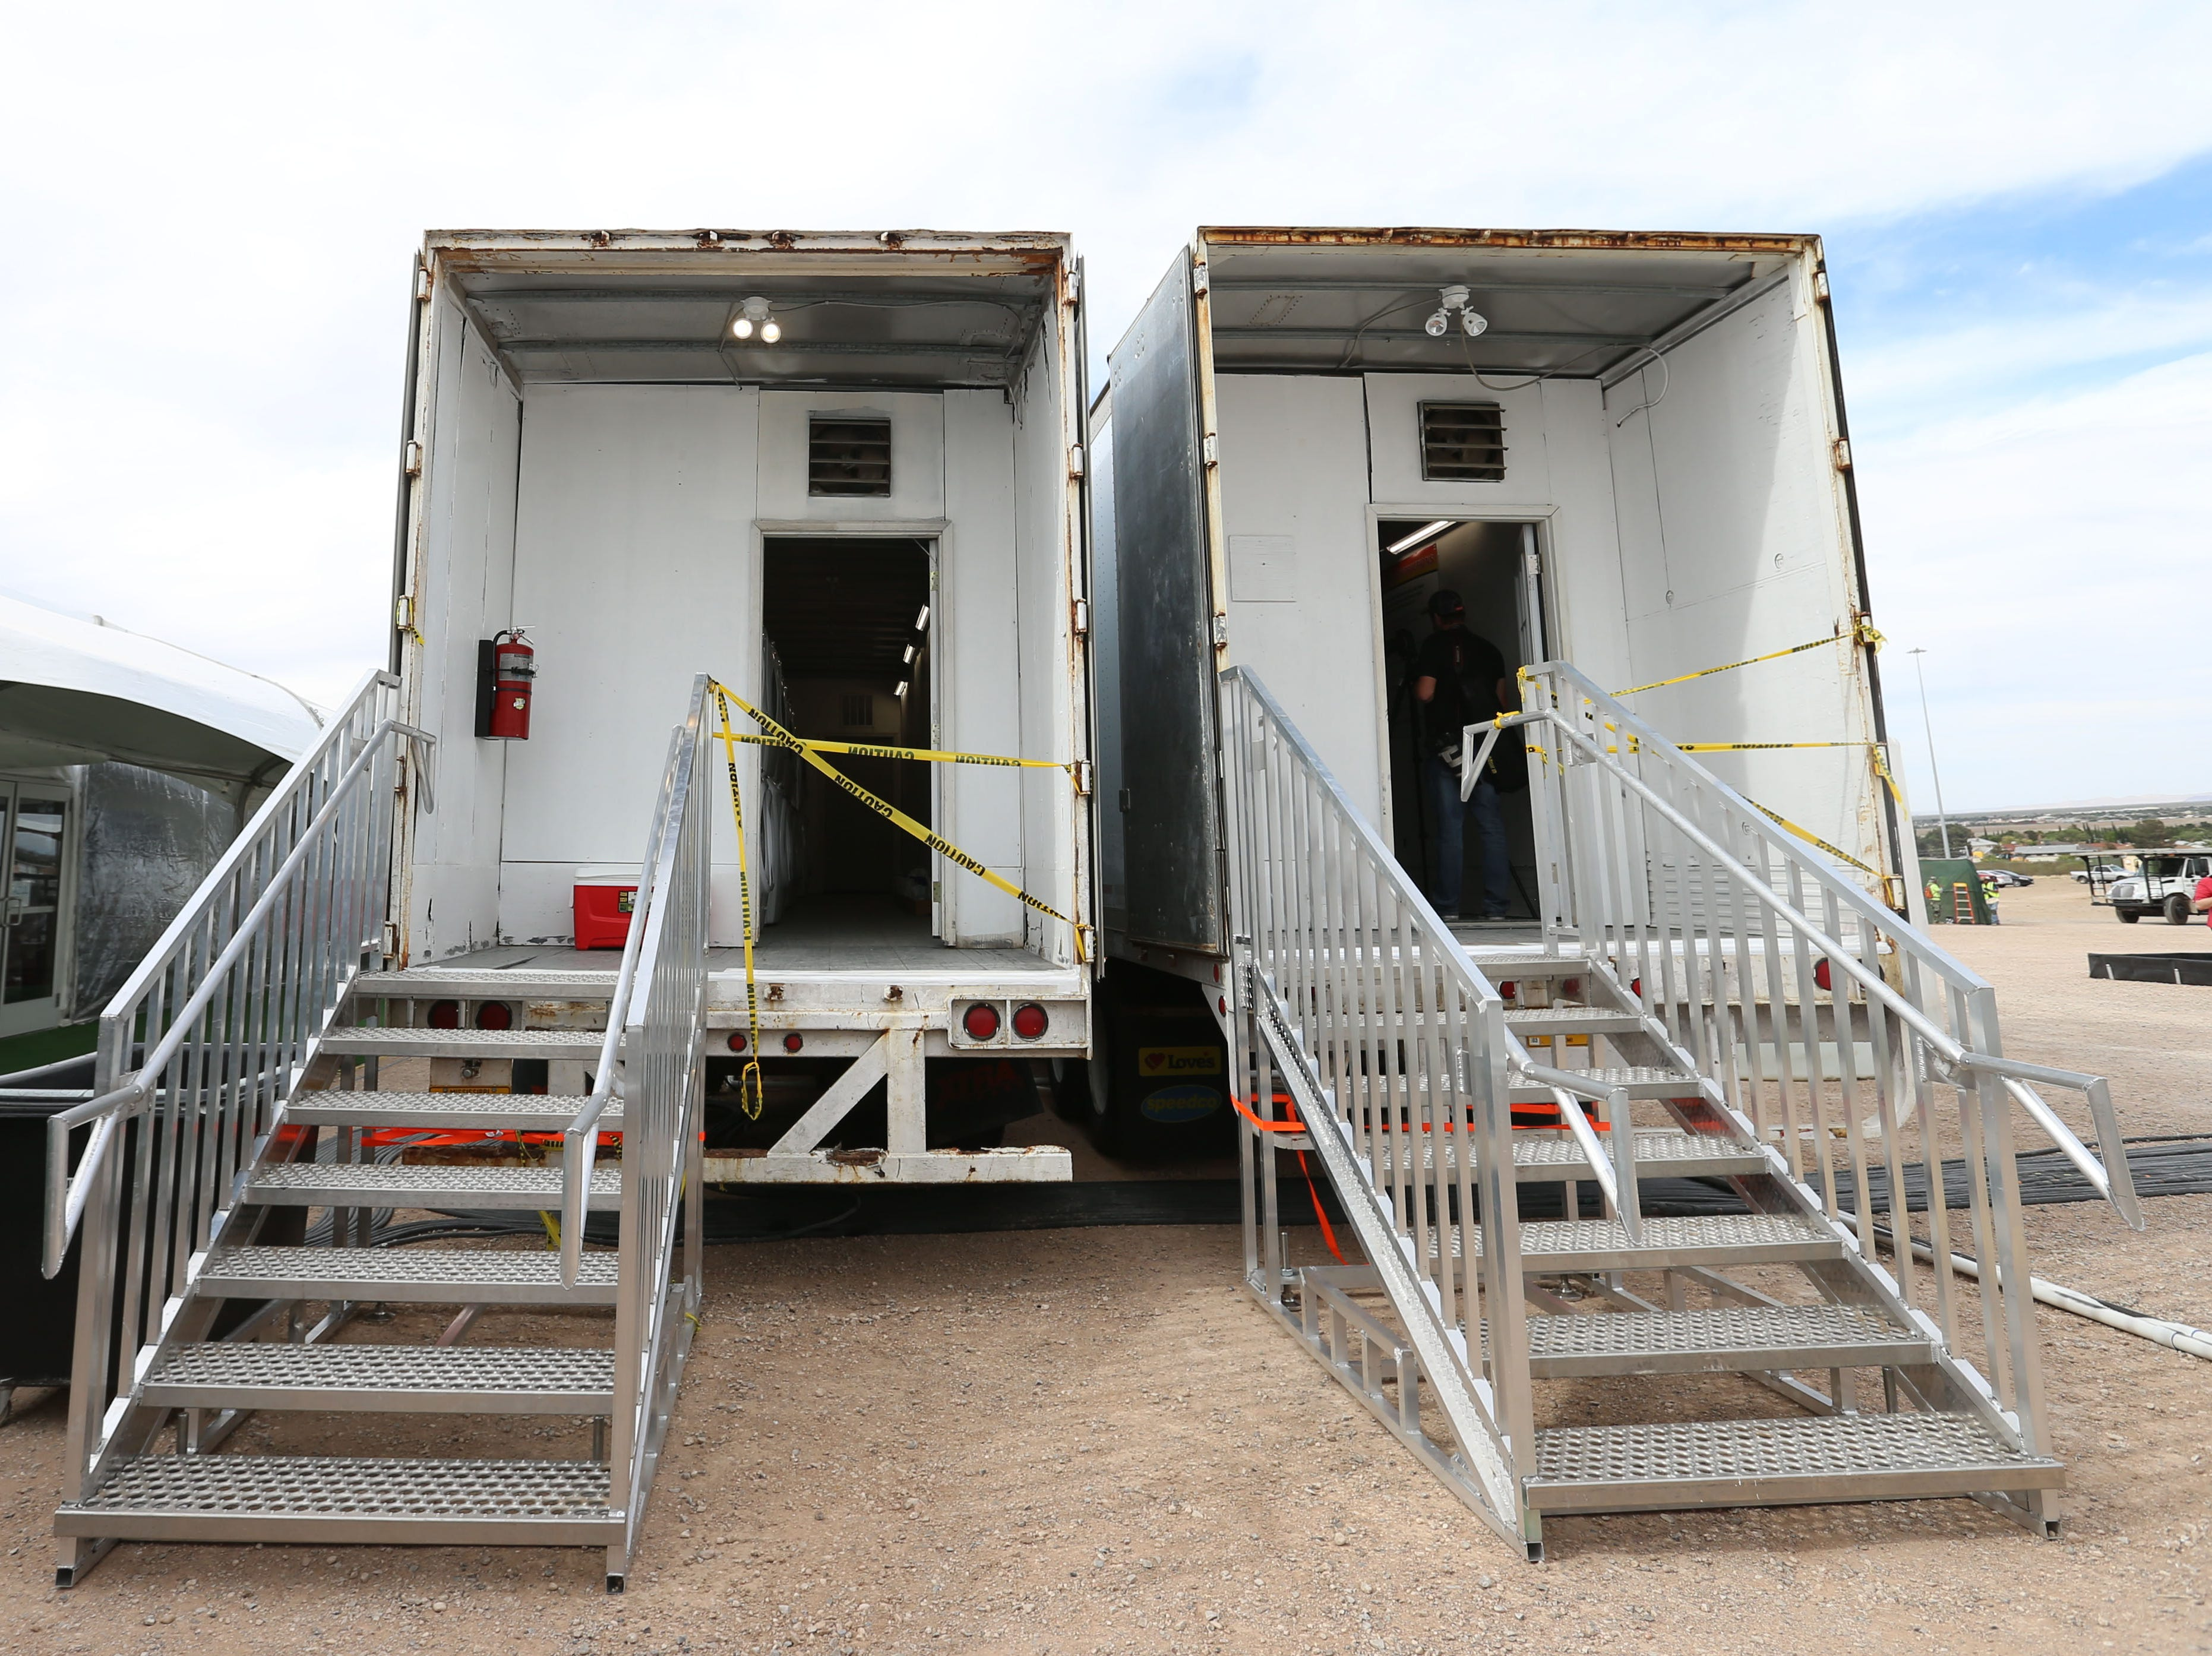 Border Patrol shows the laundry area during a media tour of a new temporary holding facility Thursday, May 2, located at 9201 Gateway S. Blvd. in El Paso. The 32,000 square foot facility is broken into four sections. Each section can hold 125 people.